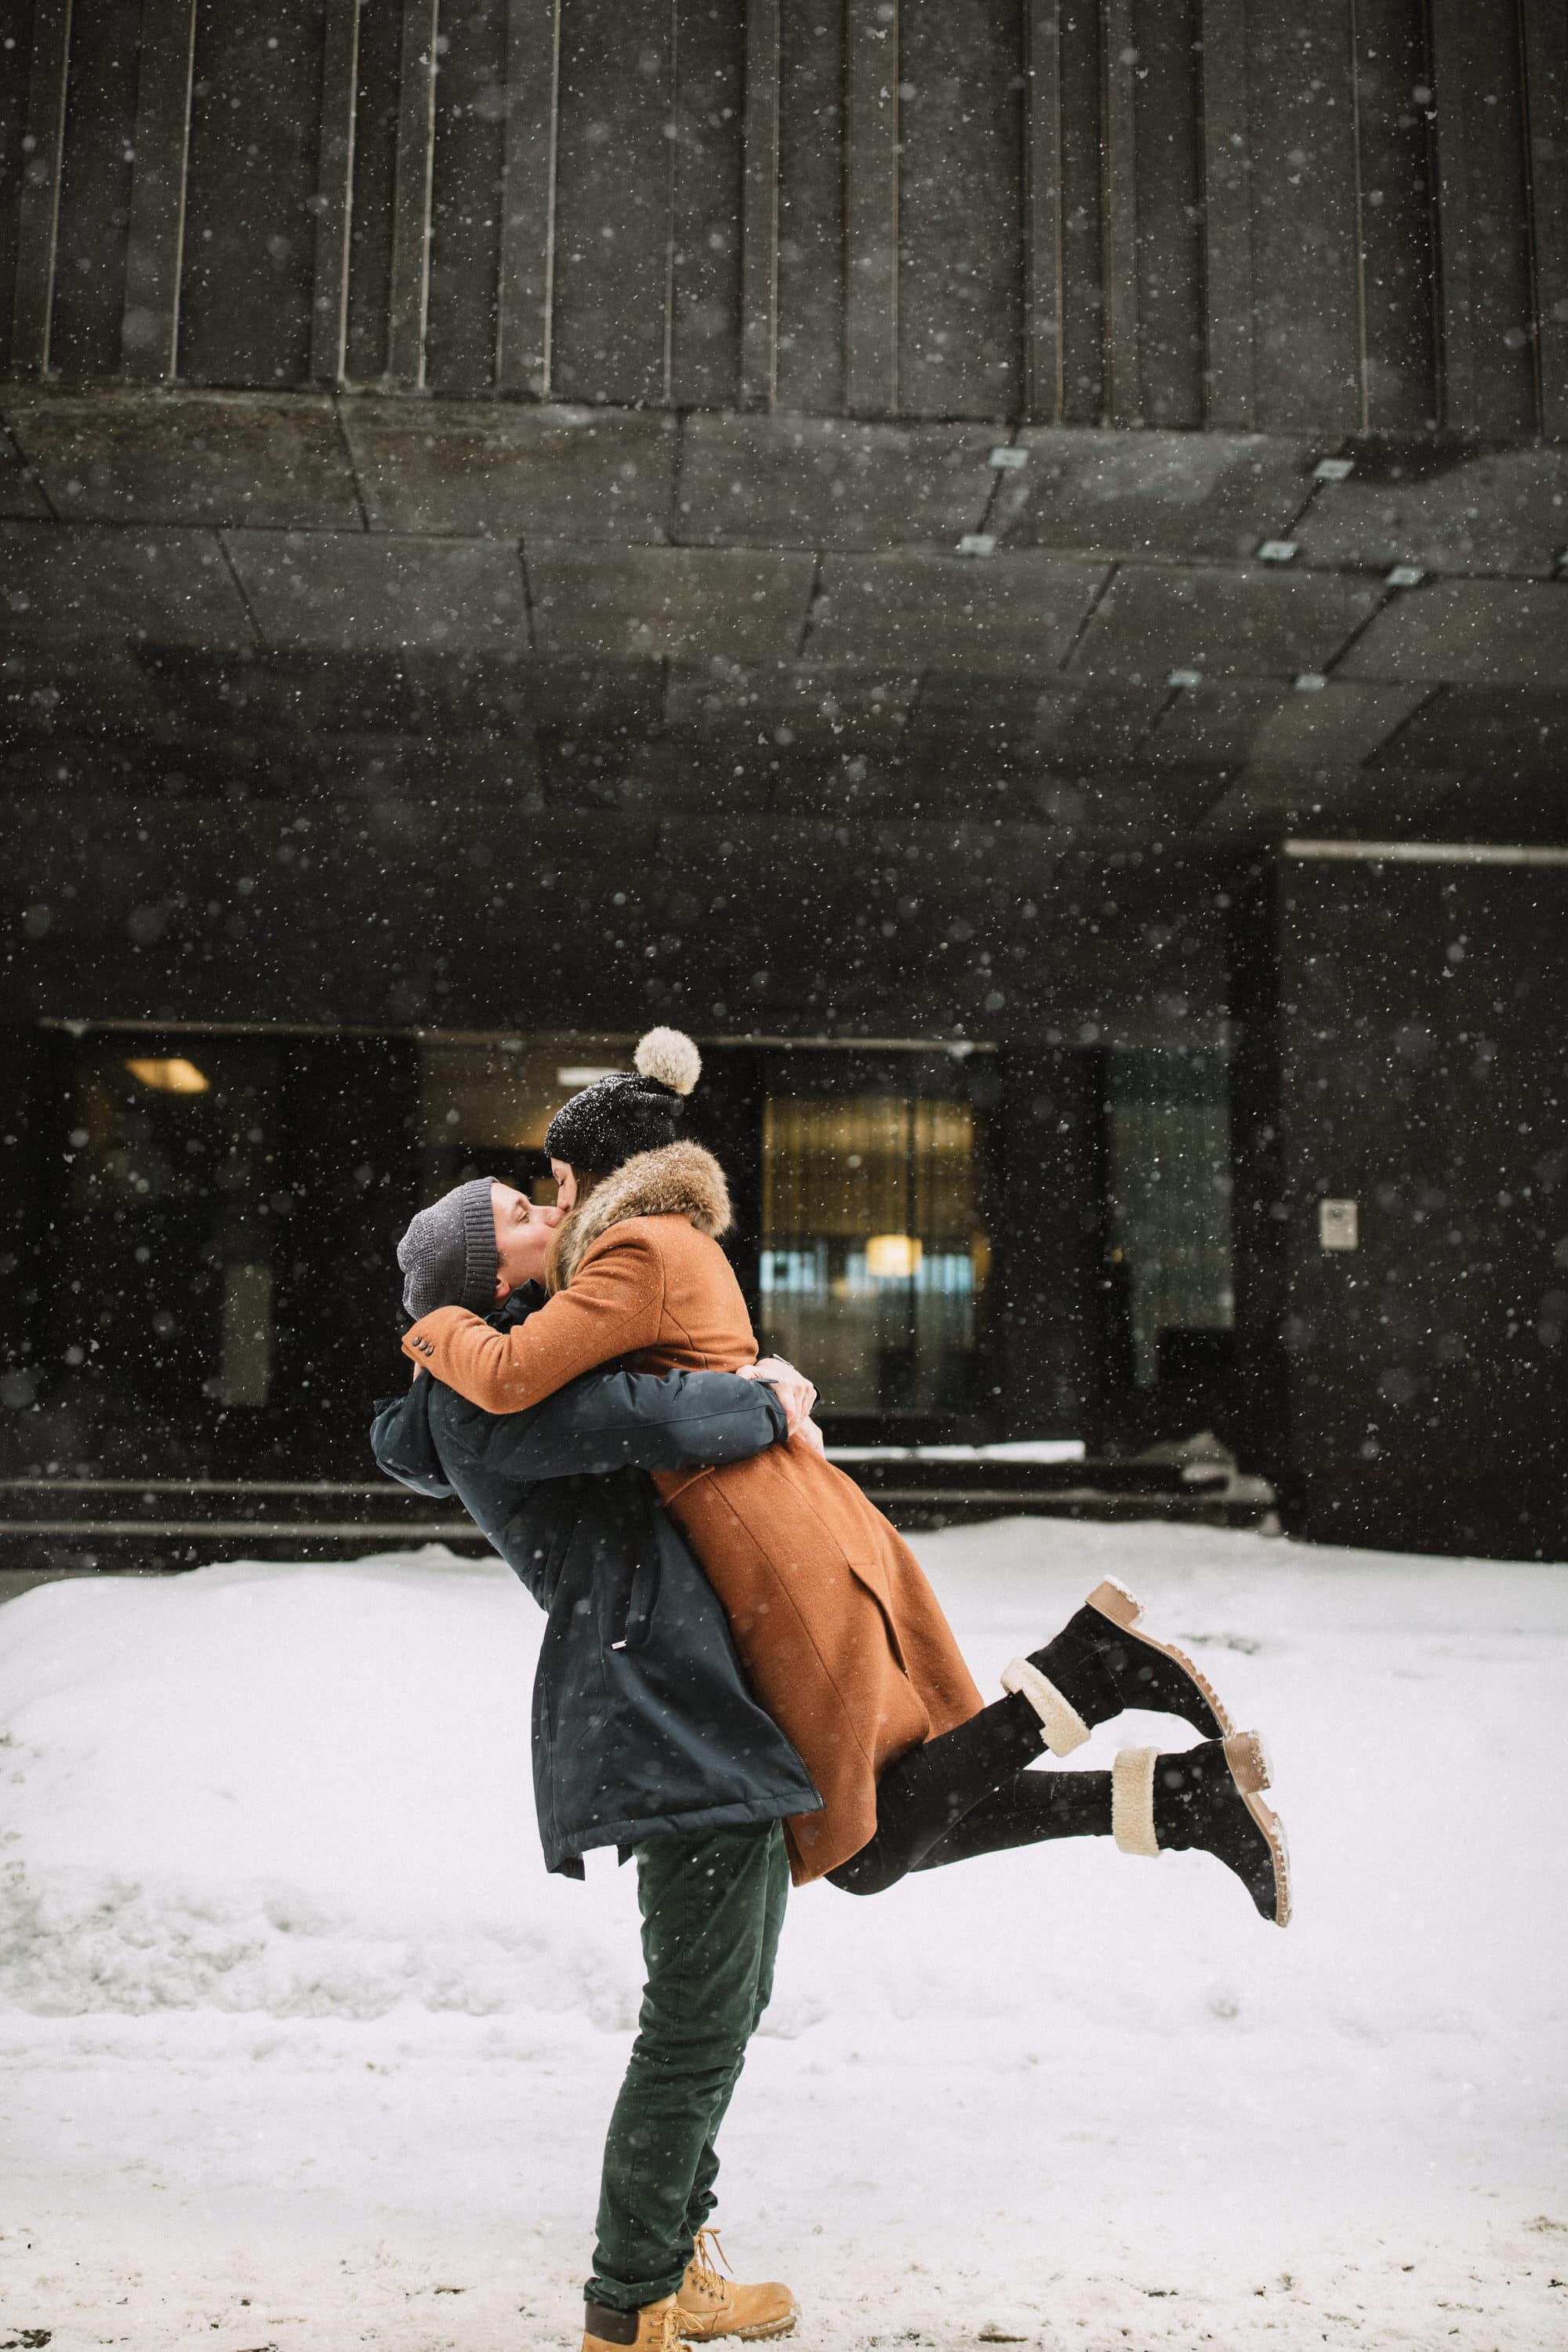 A playful embrace during their winter engagement session near rue notre dame in vieux port Montreal with Montreal photographer Brent Calis.